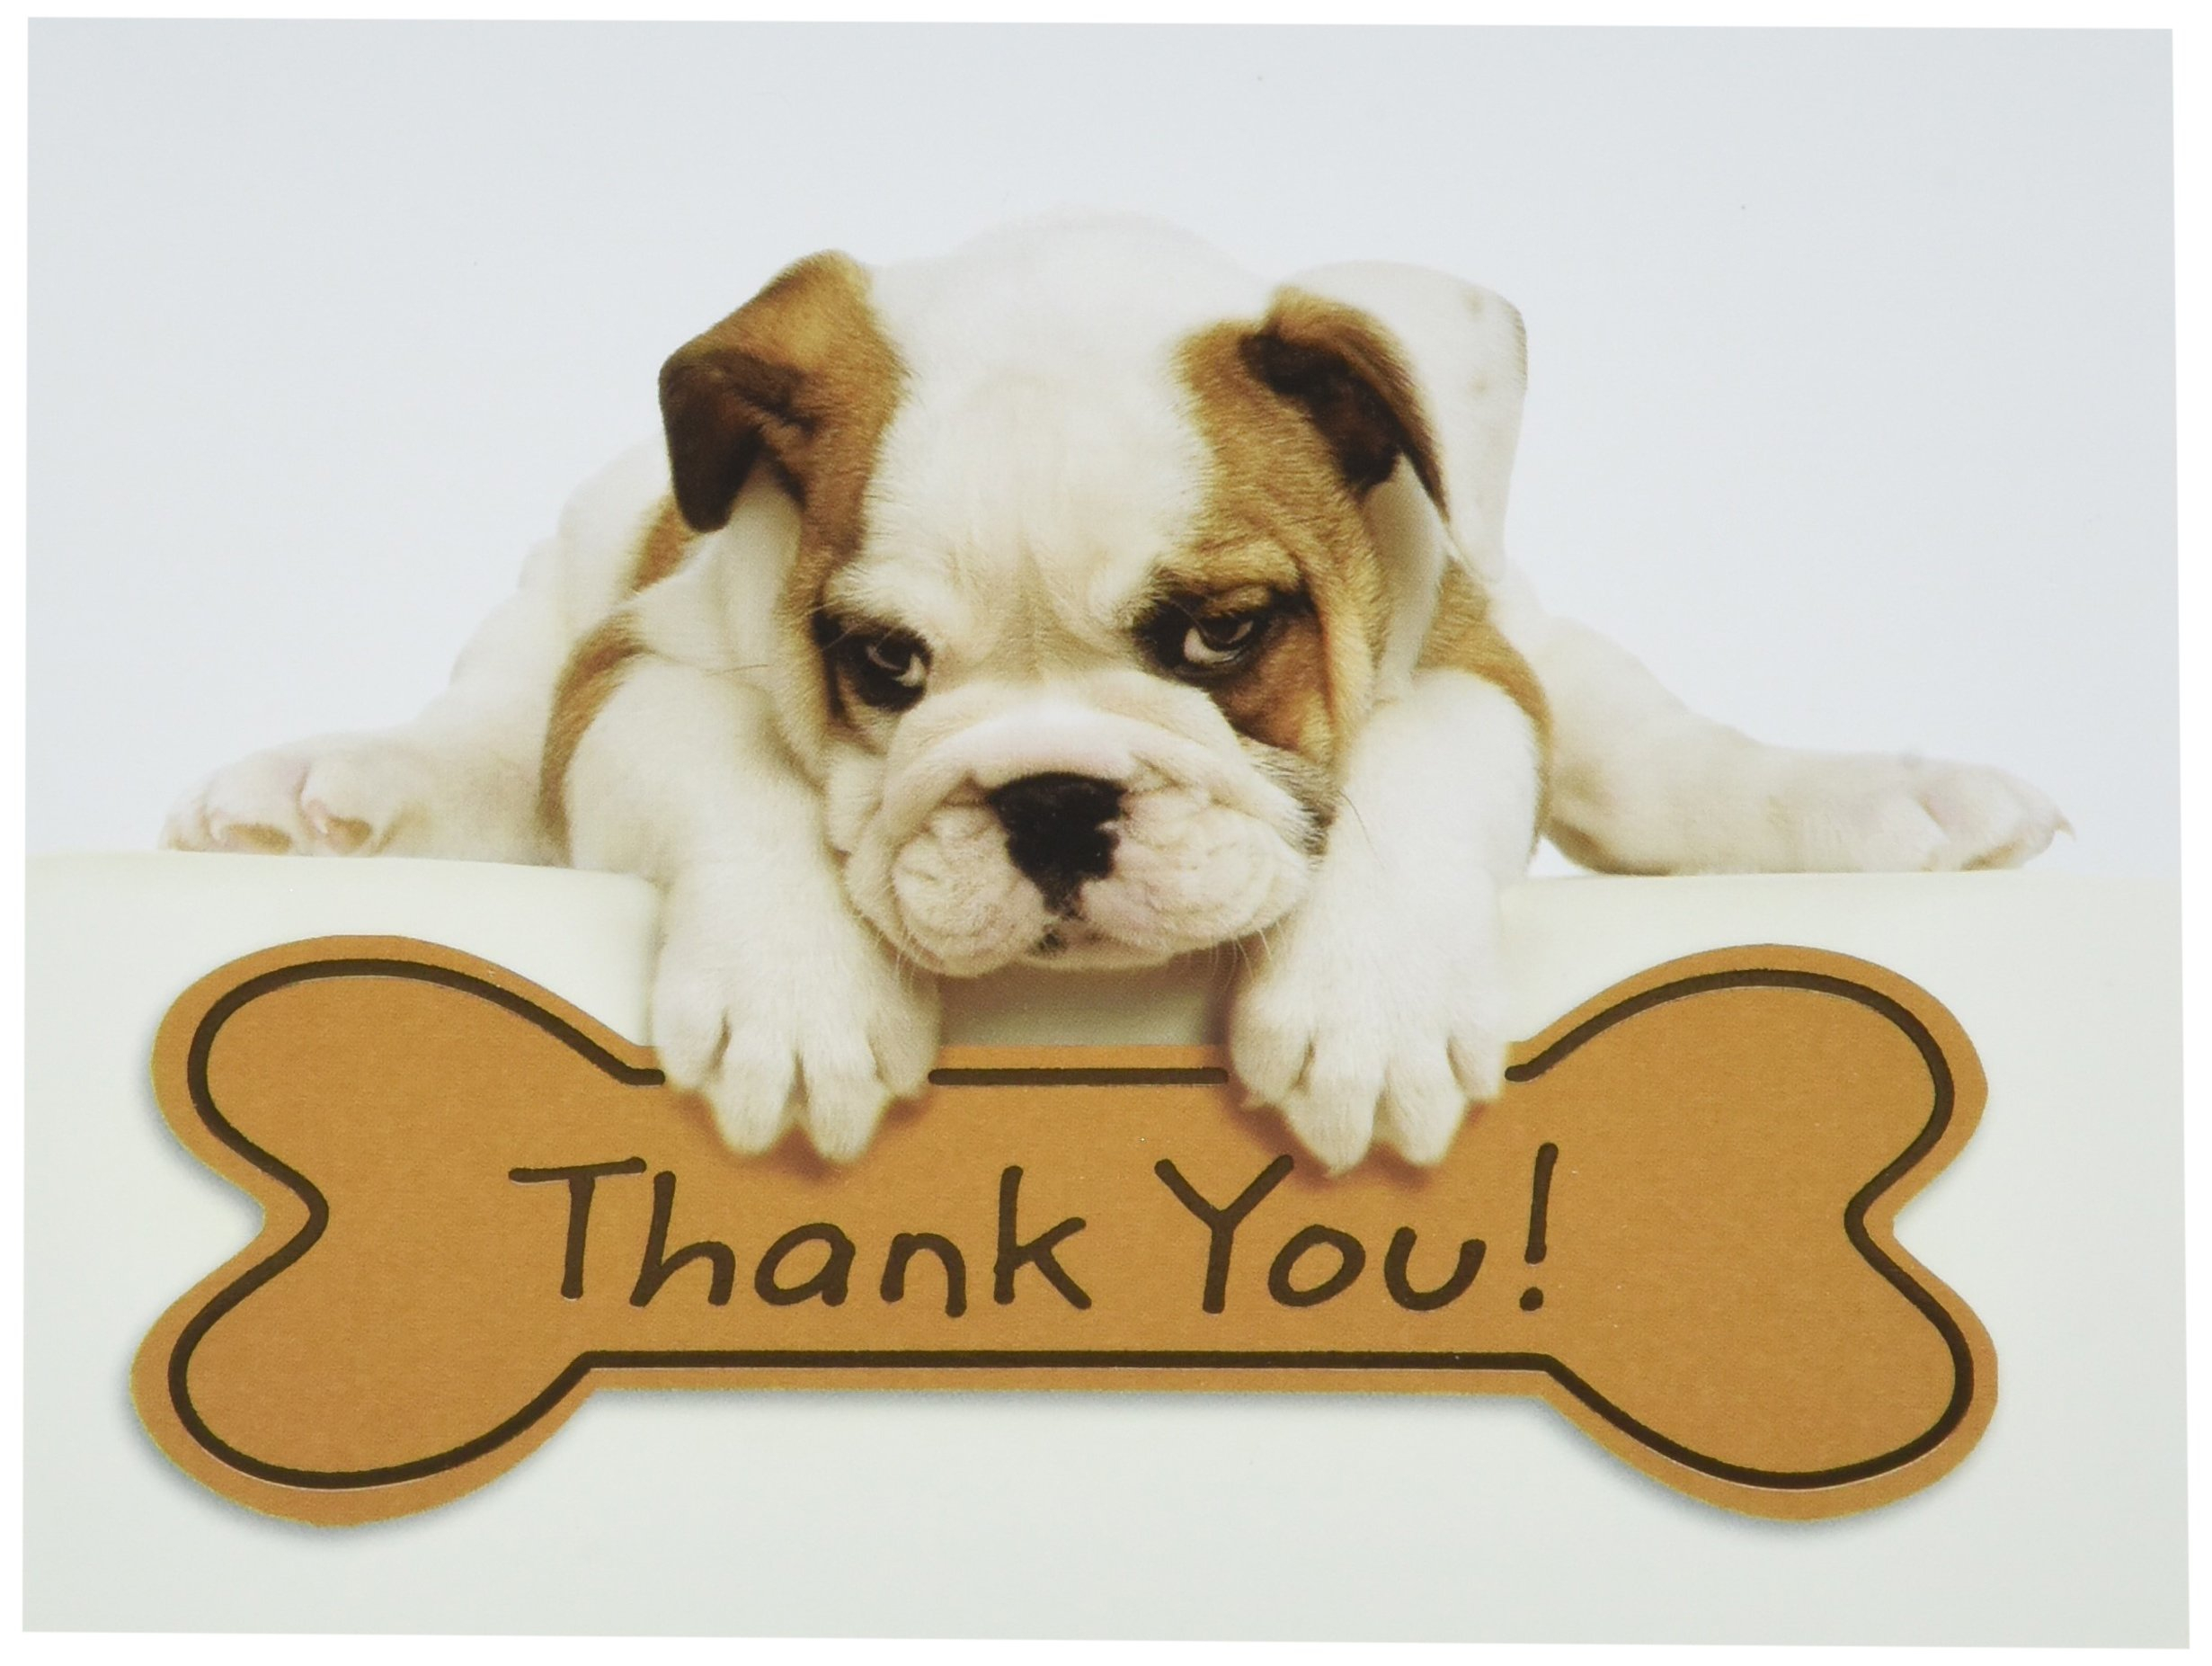 Amazon.com : Design Design Bulldog Puppy Thank You Note Cards 20 ...